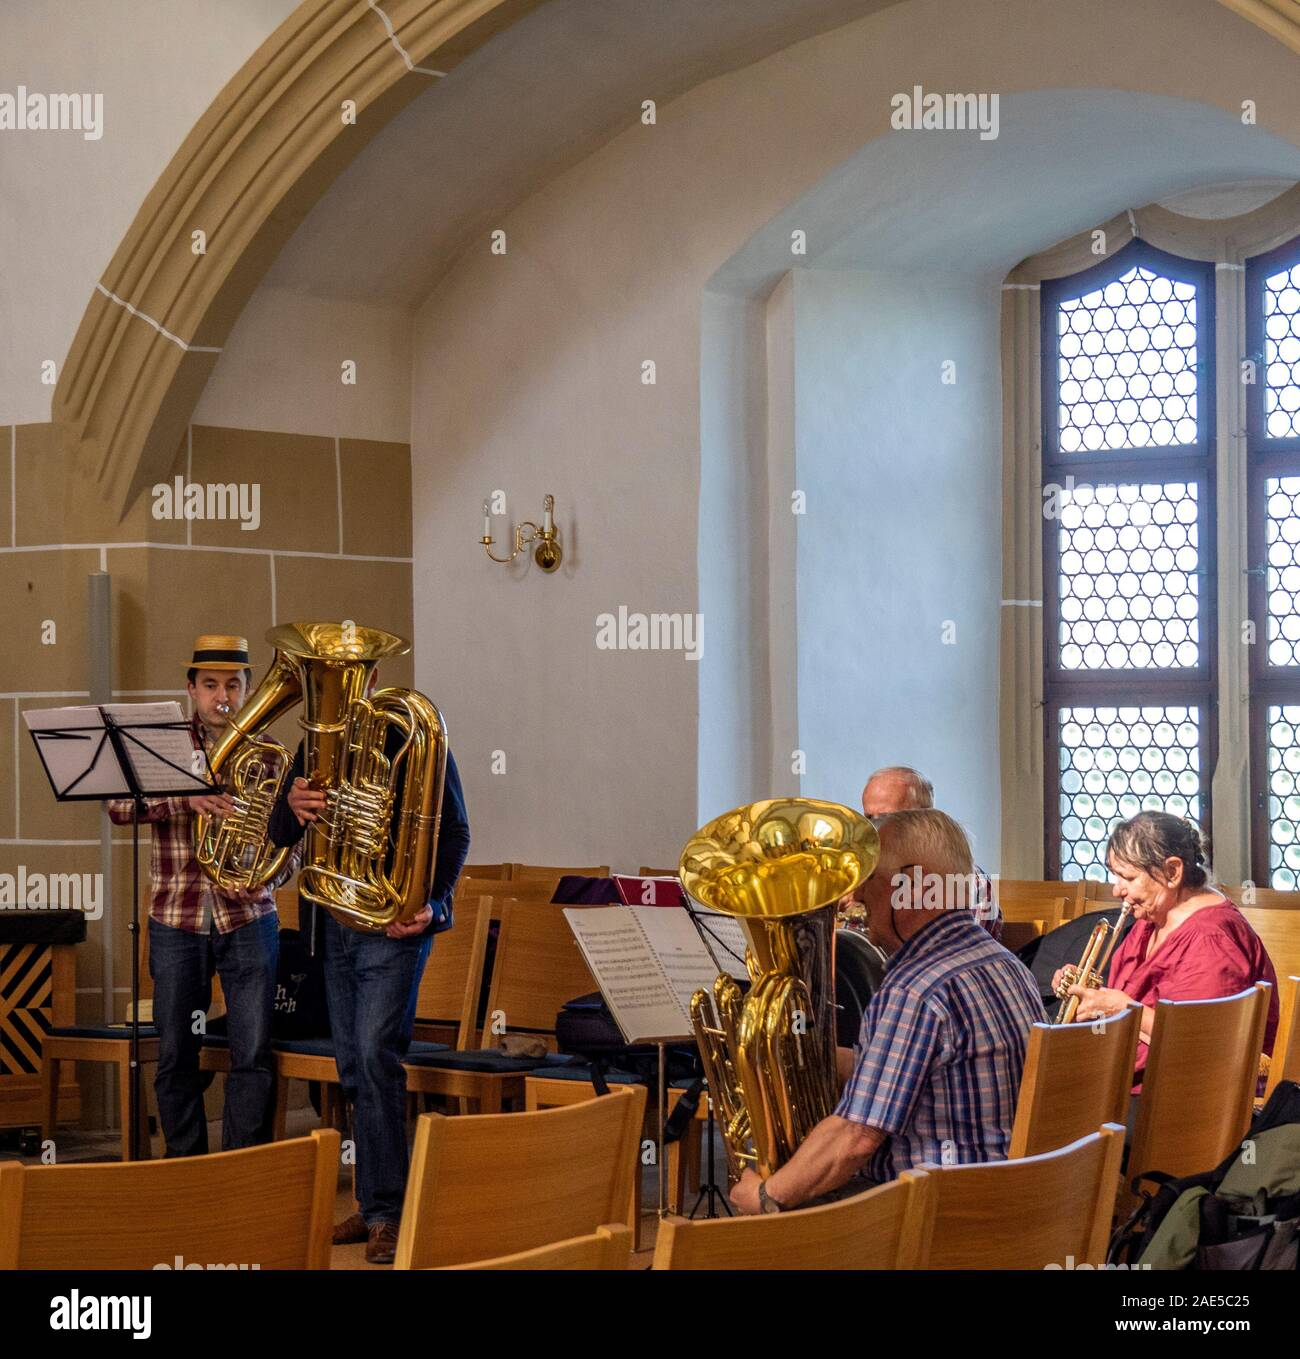 Brass band playing in Castle Hartenfels chapel the first Protestant church in the world, Altstadt Torgau Saxony Germany. Stock Photo